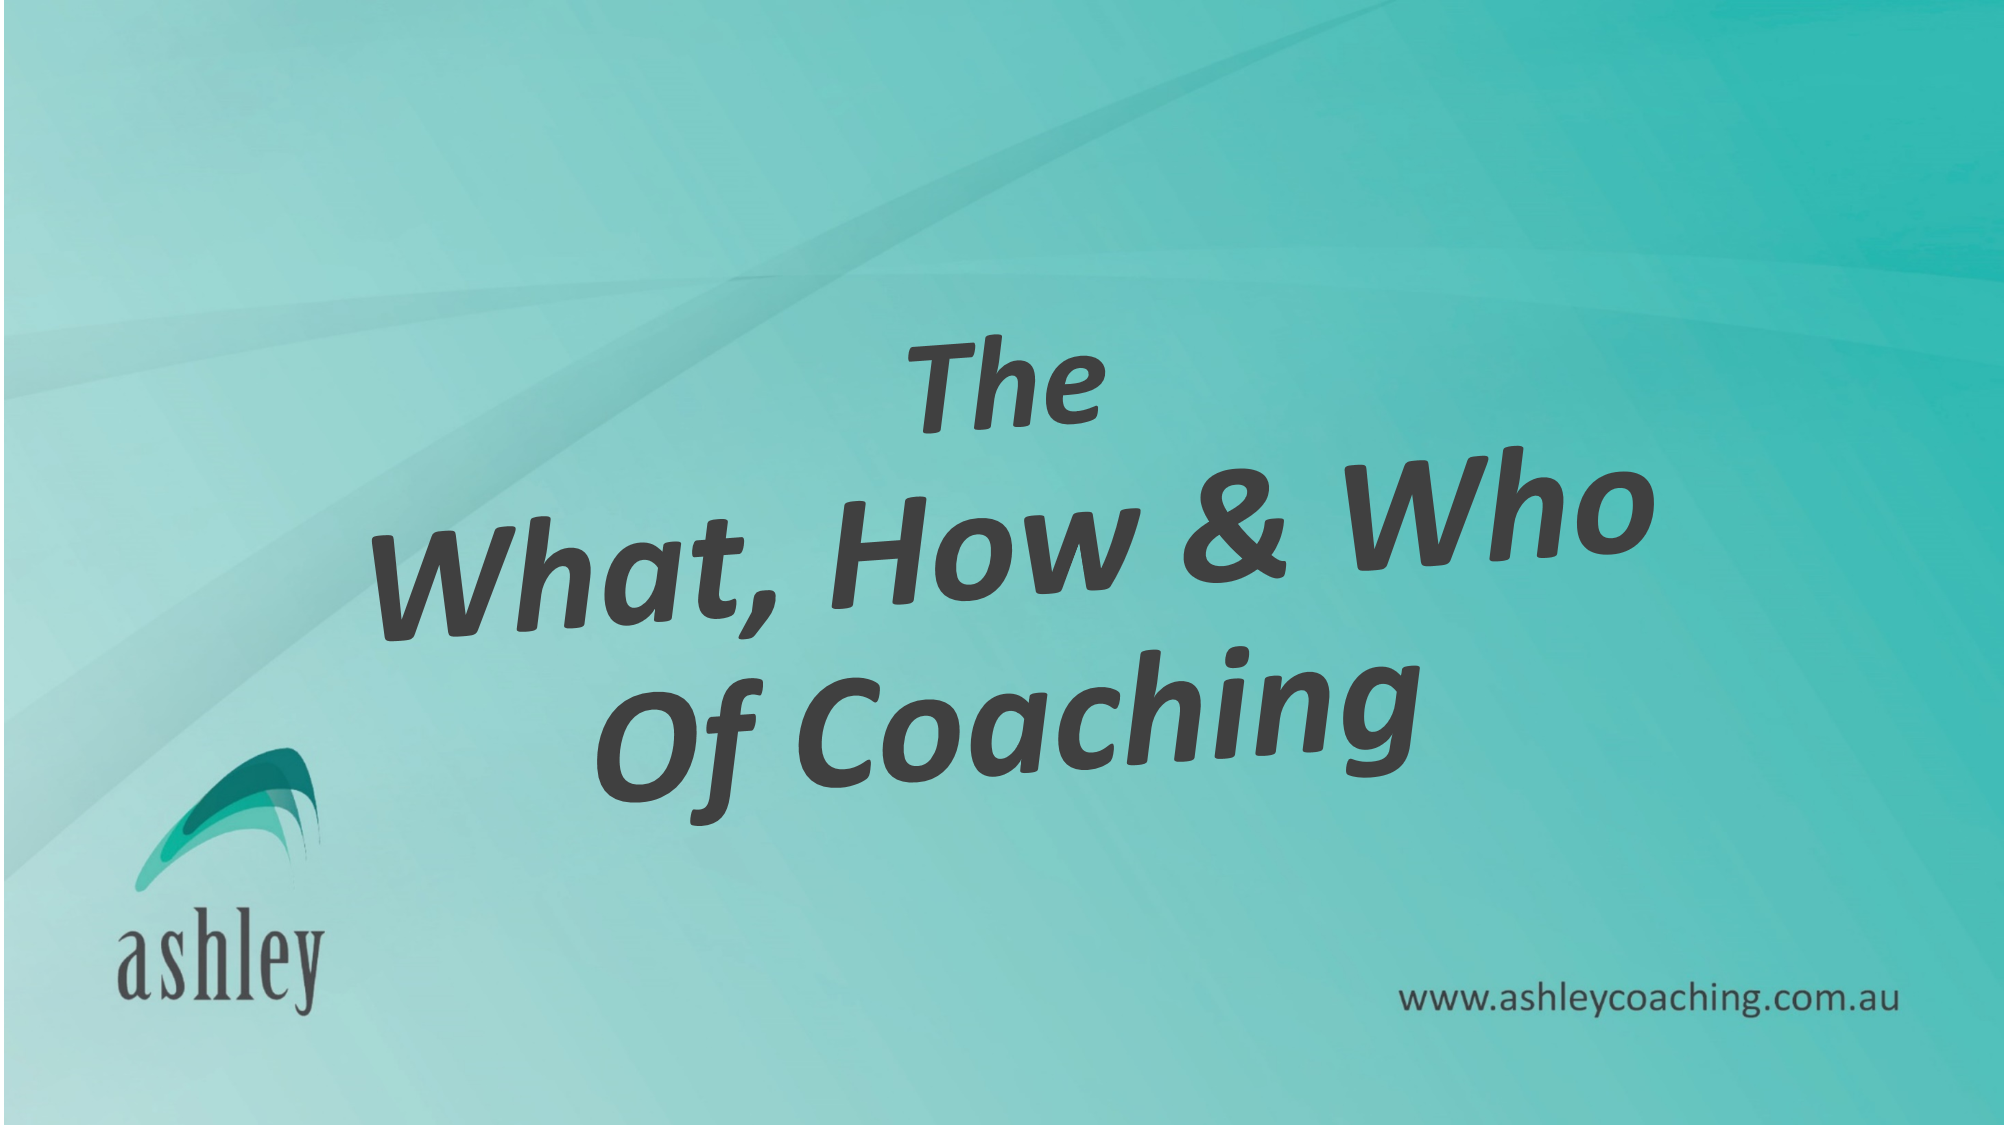 The What, How & Who of Coaching